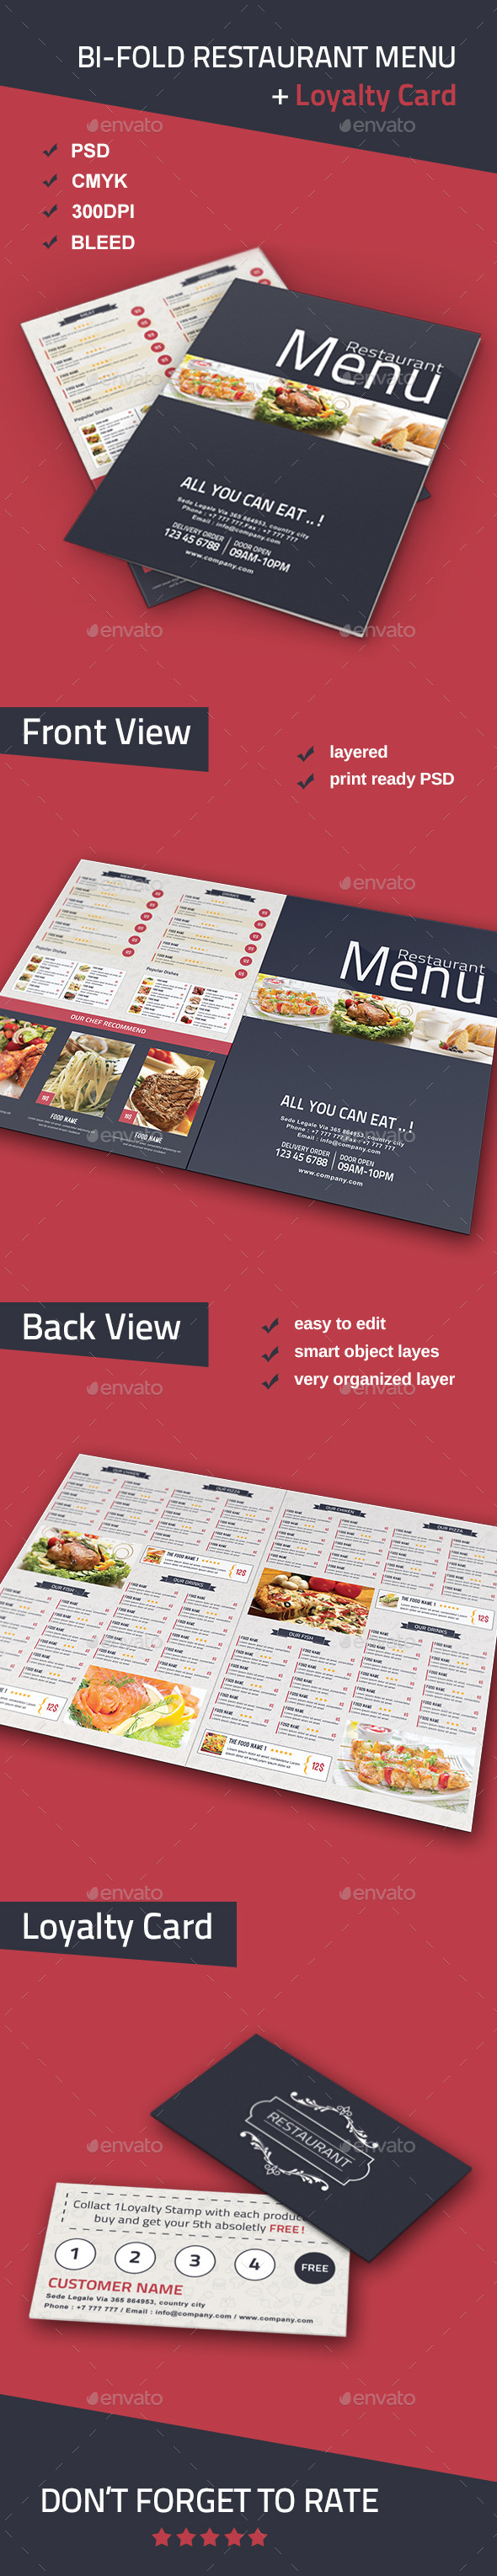 GraphicRiver Bi-fold Restaurant Food Menu 10471822